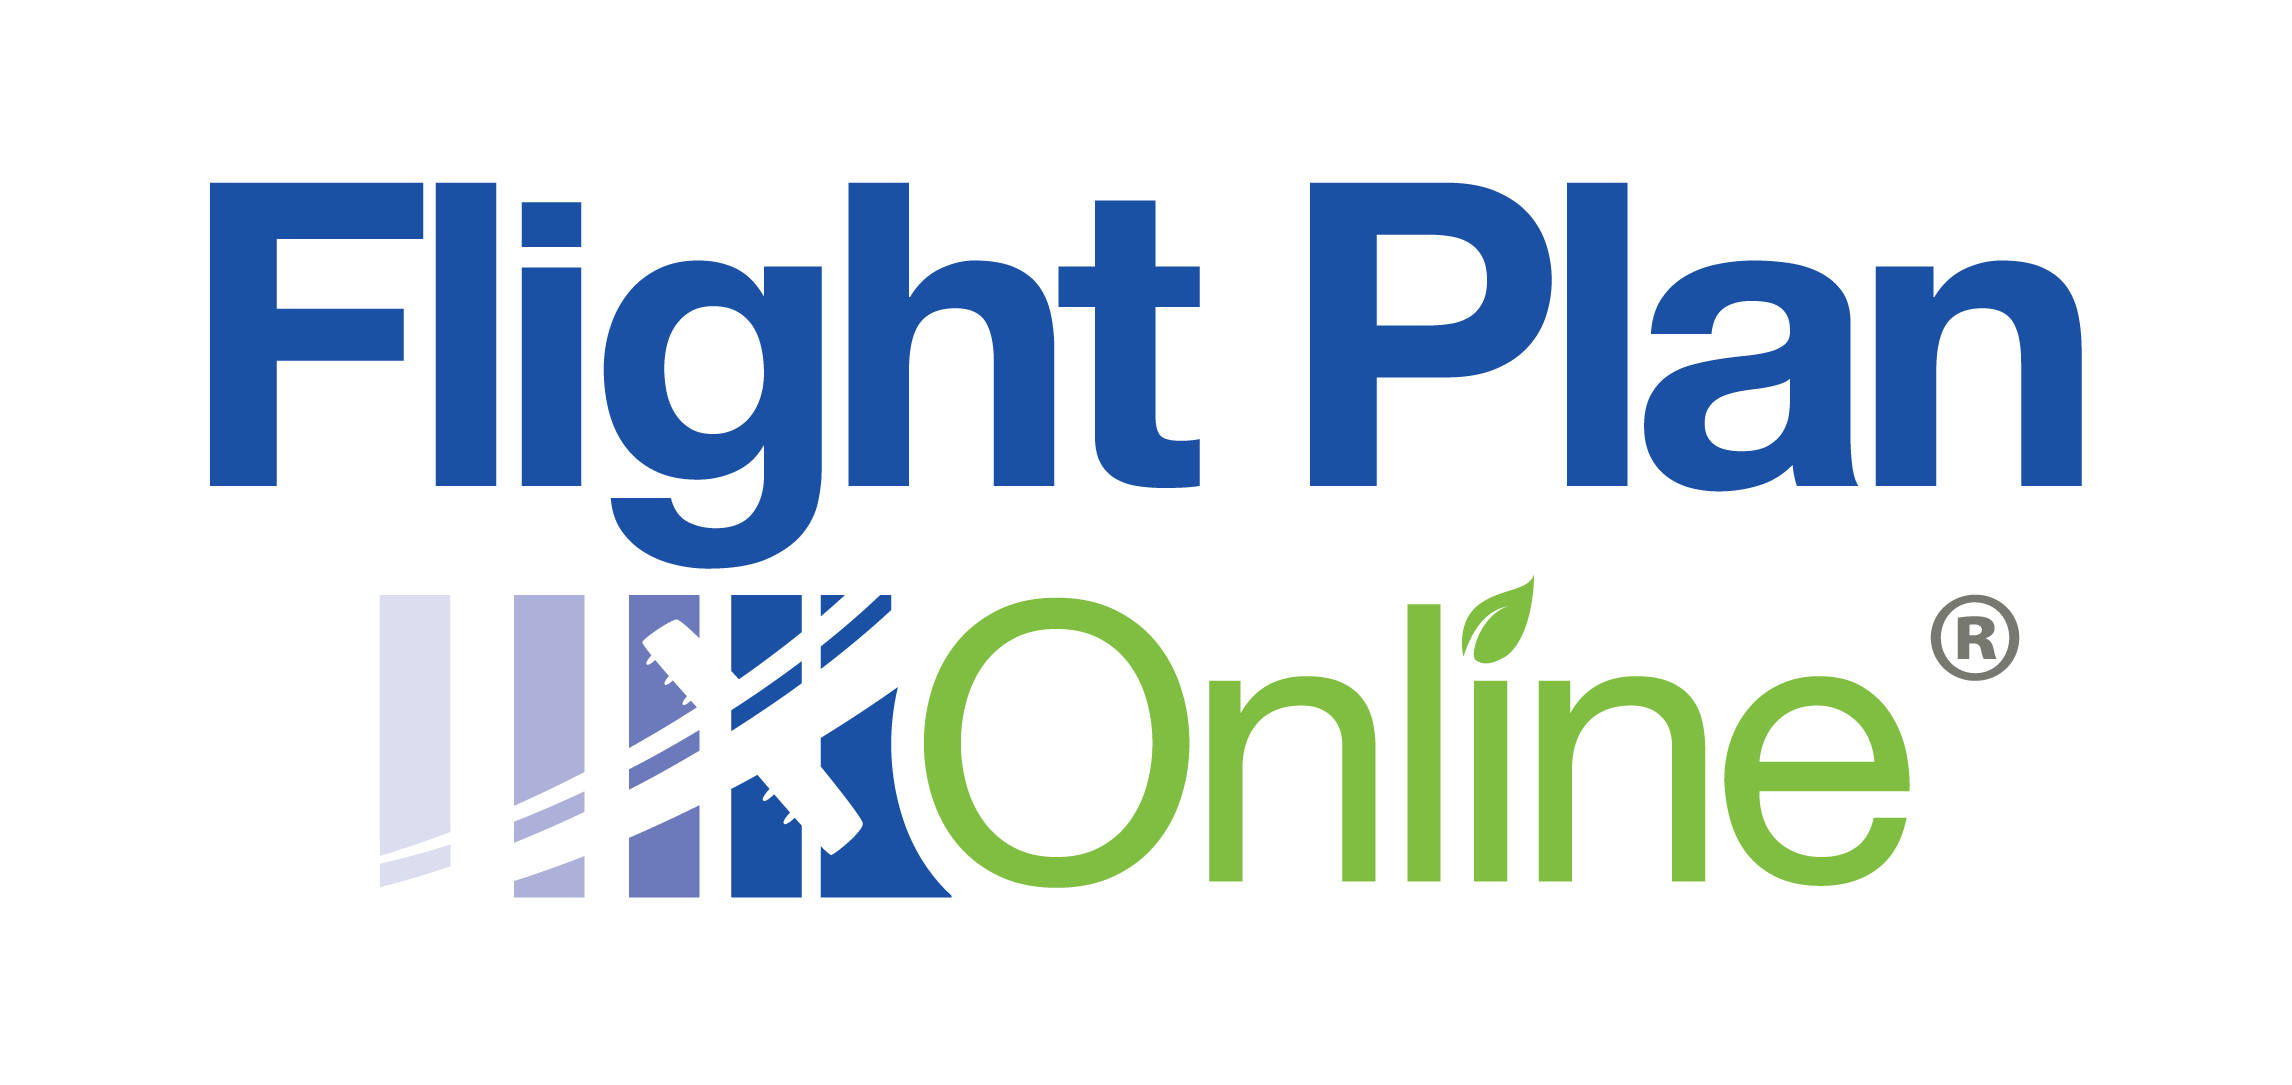 Flight Plan Online. Blue and green logo with graphic image of airplane taking off.